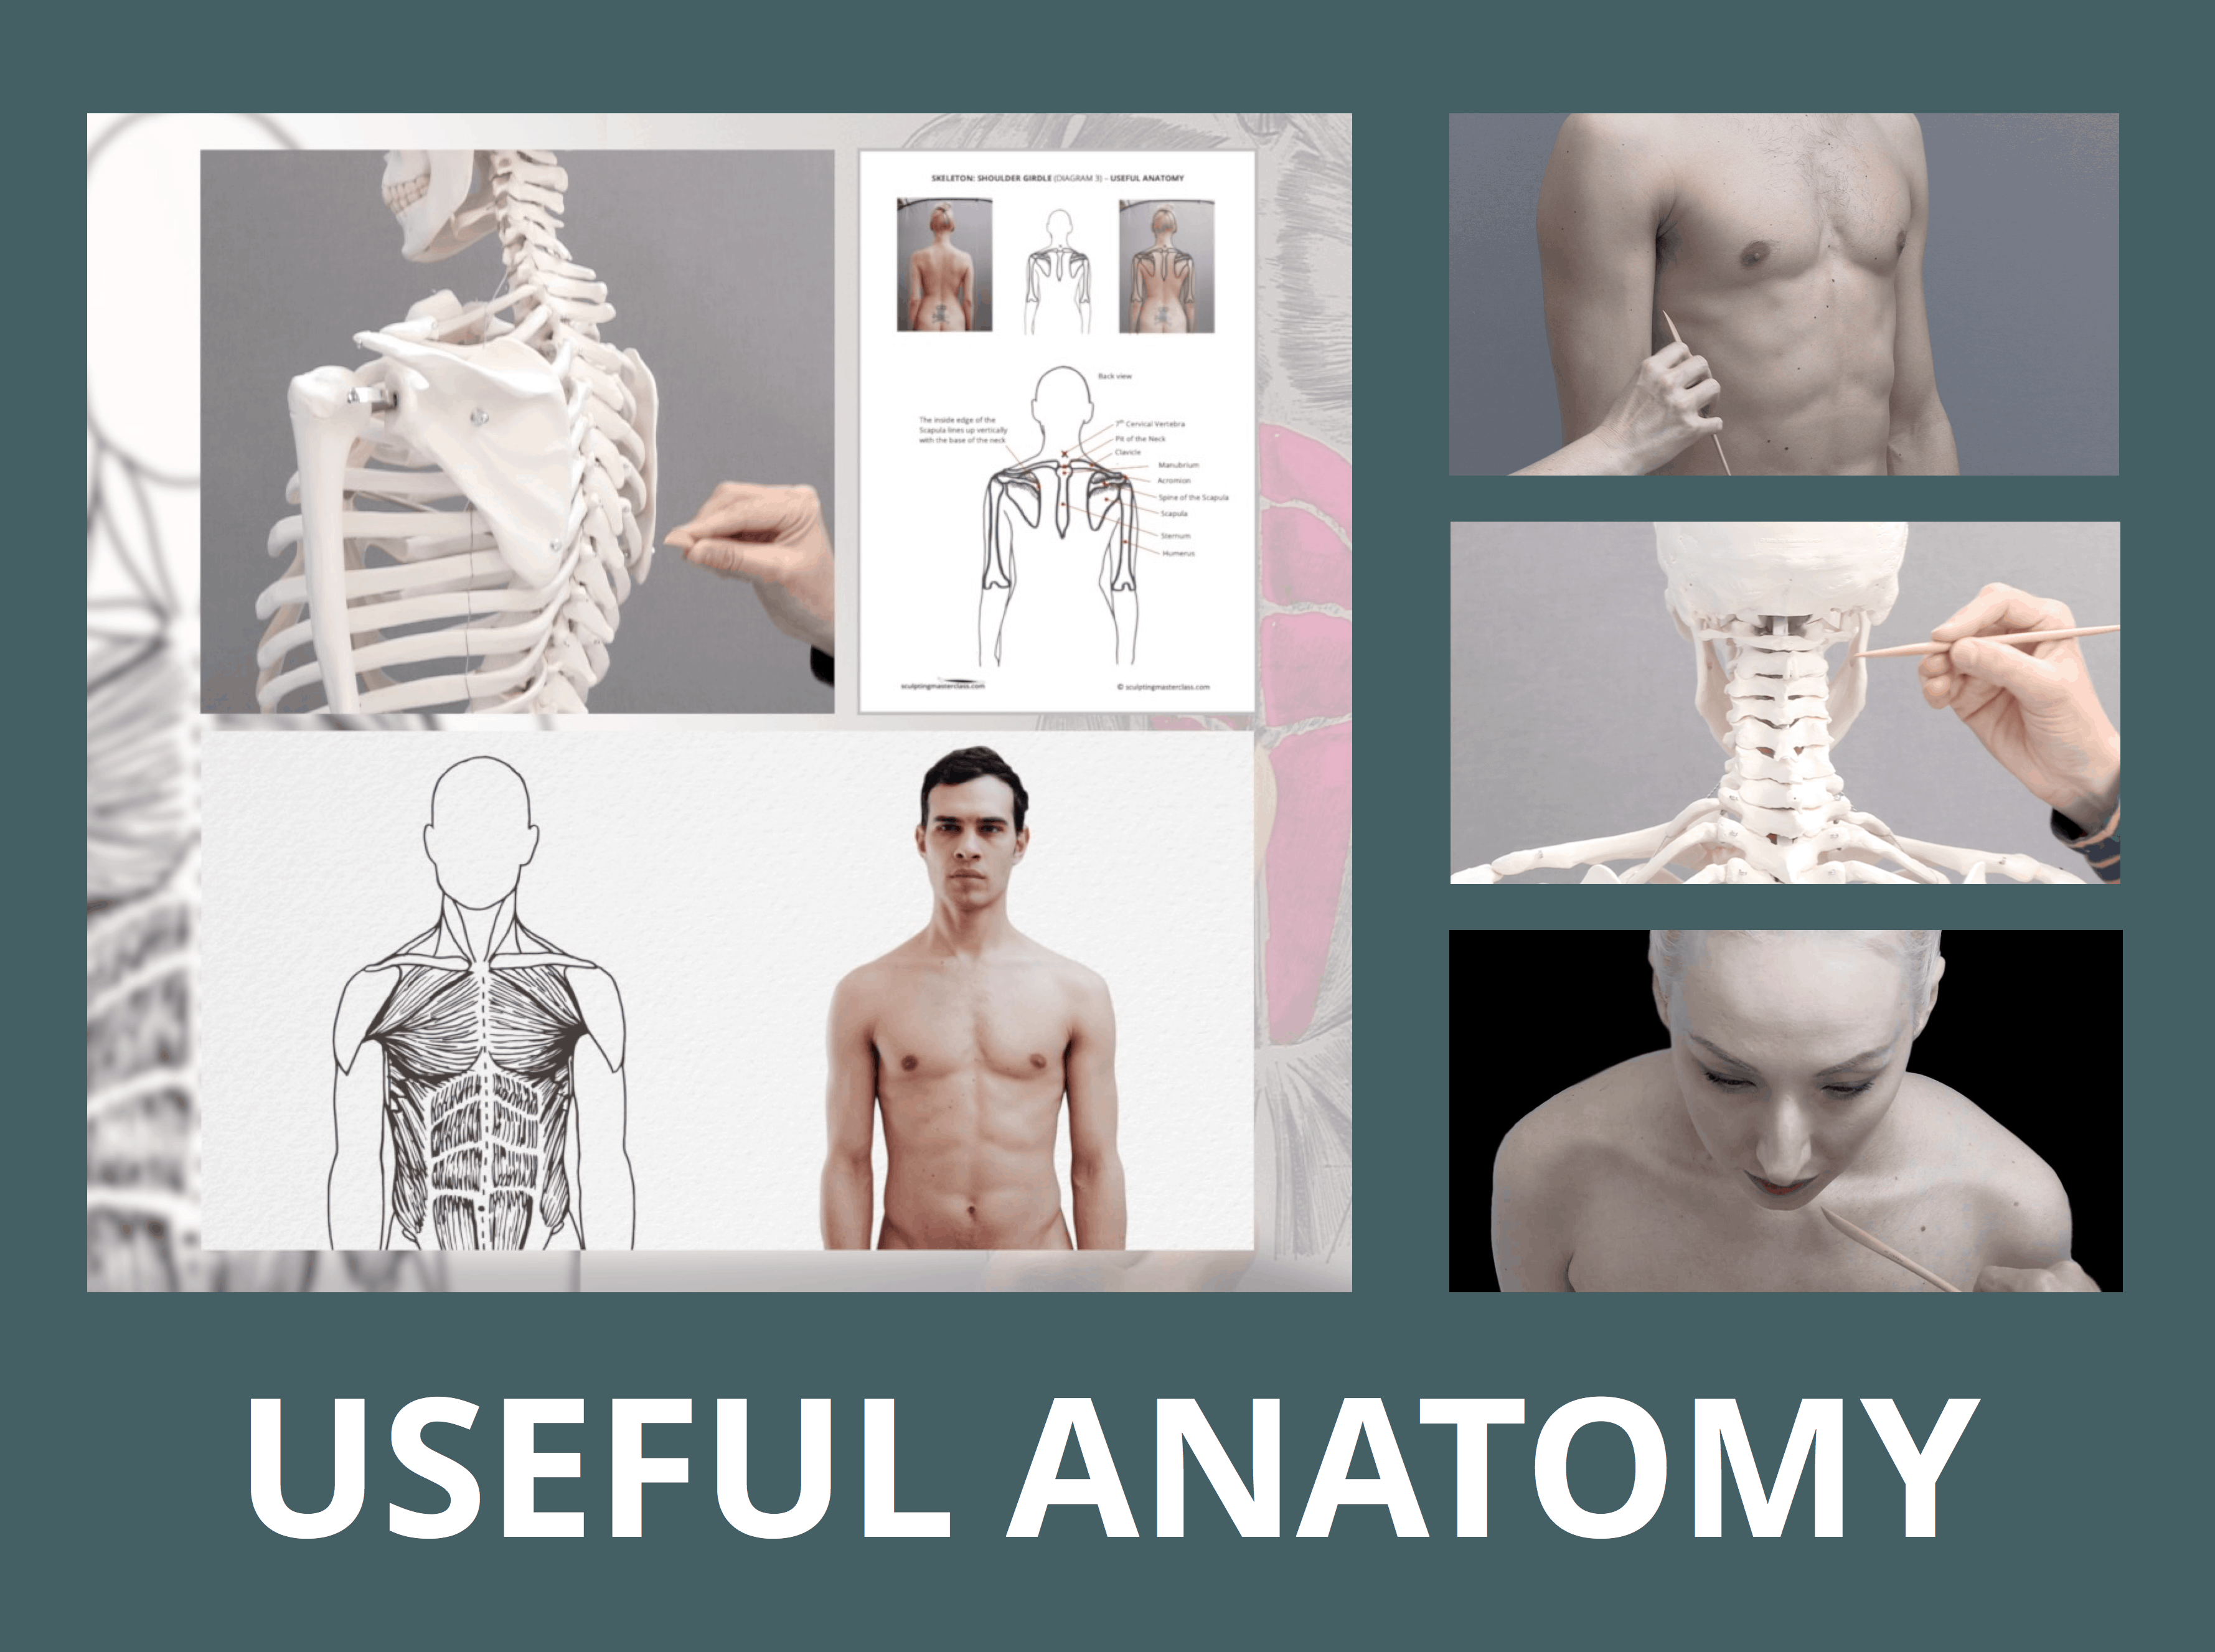 Poster Image for USEFUL ANATOMY course